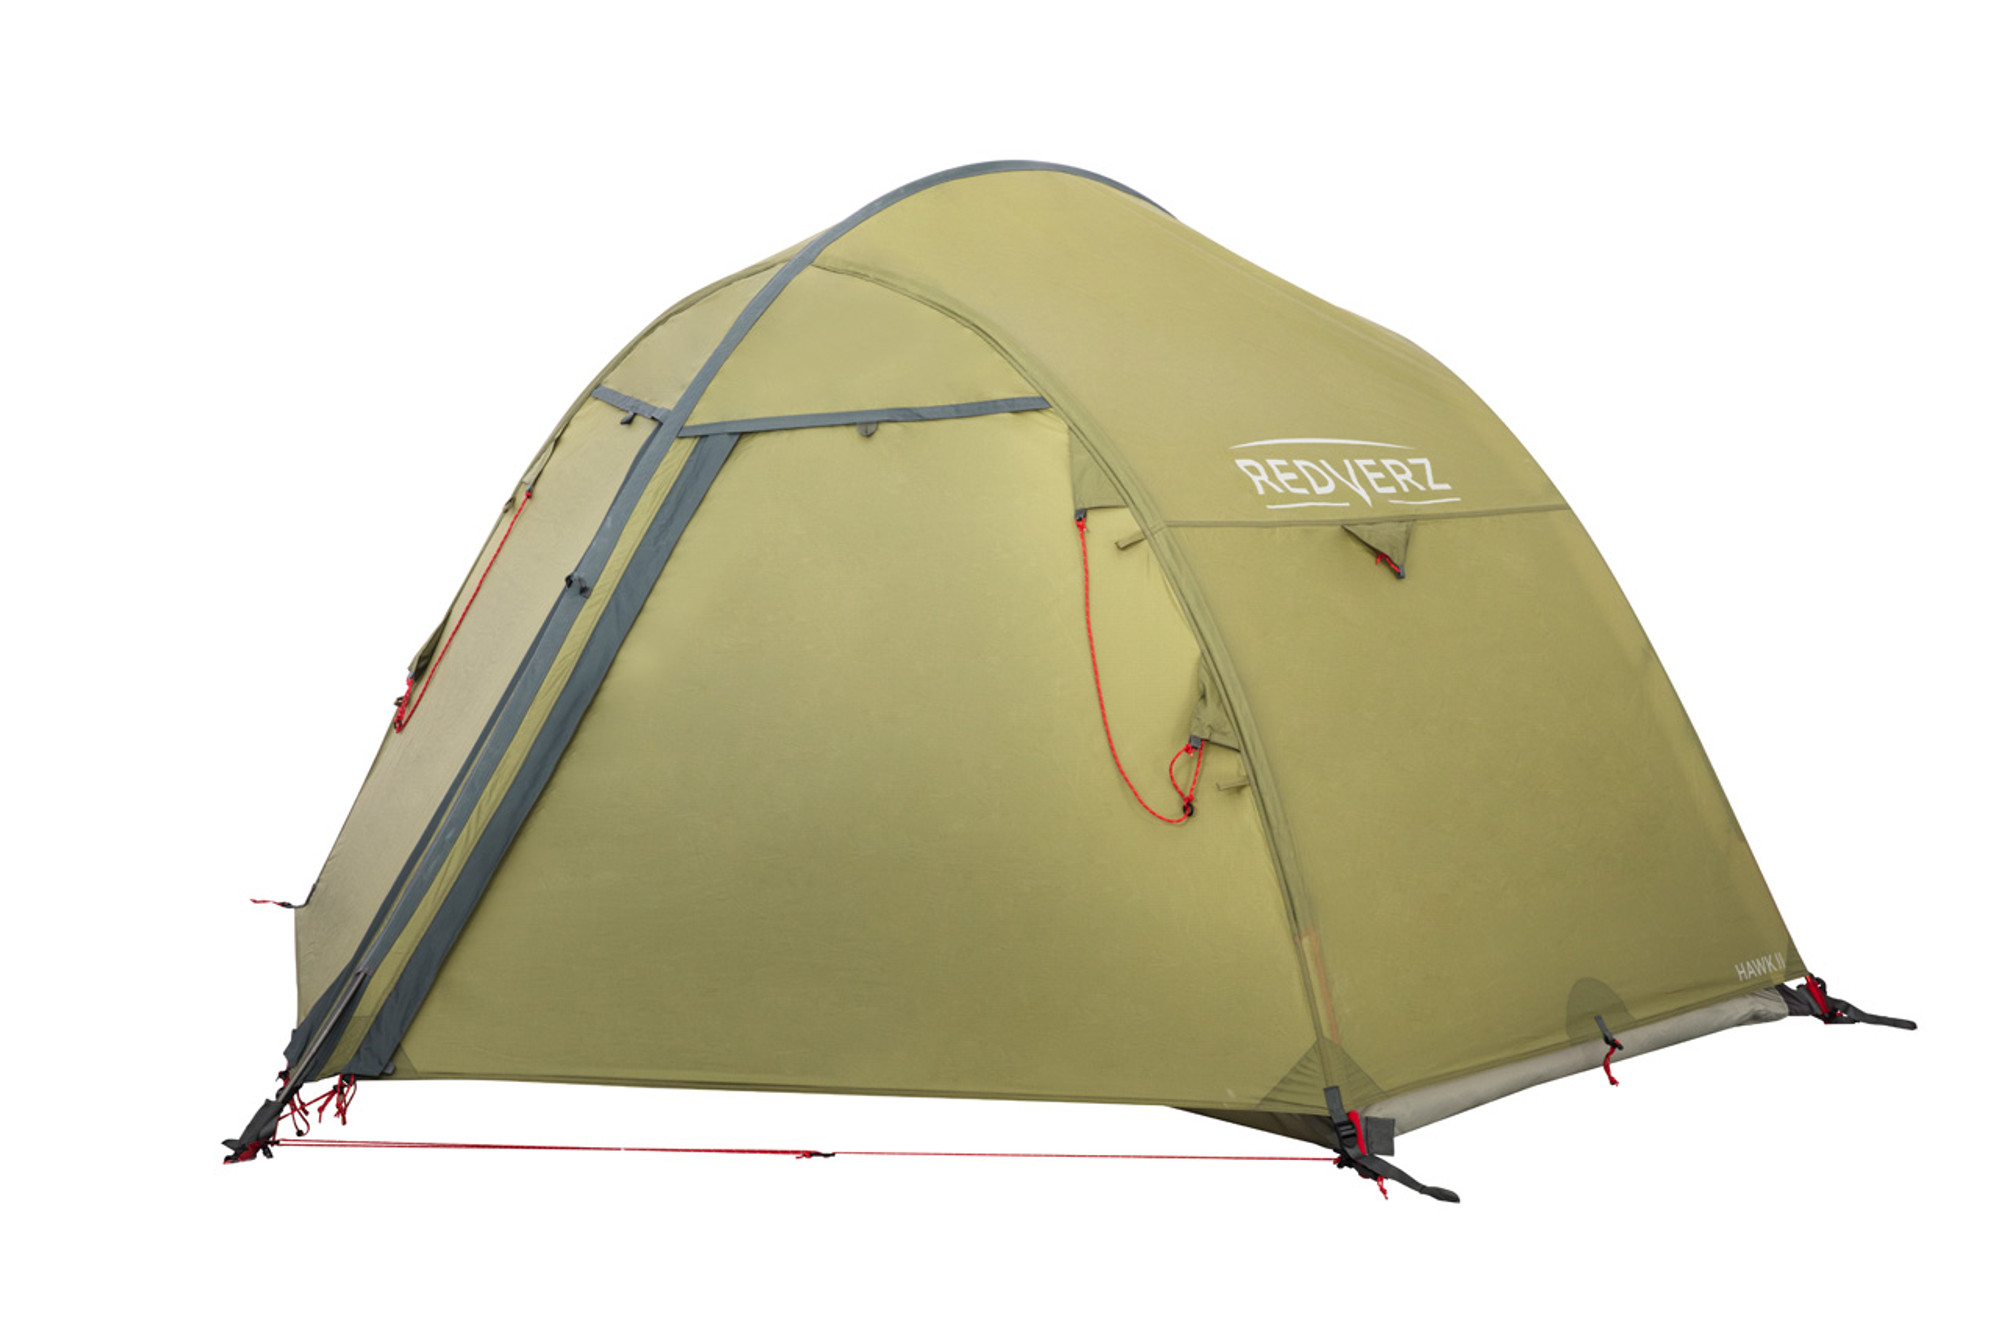 4 season 2 person freestanding tent in green ...  sc 1 st  Redverz Gear & Redverz Hawk II Mountaineering Tent - A 4 Season 2 Person ...